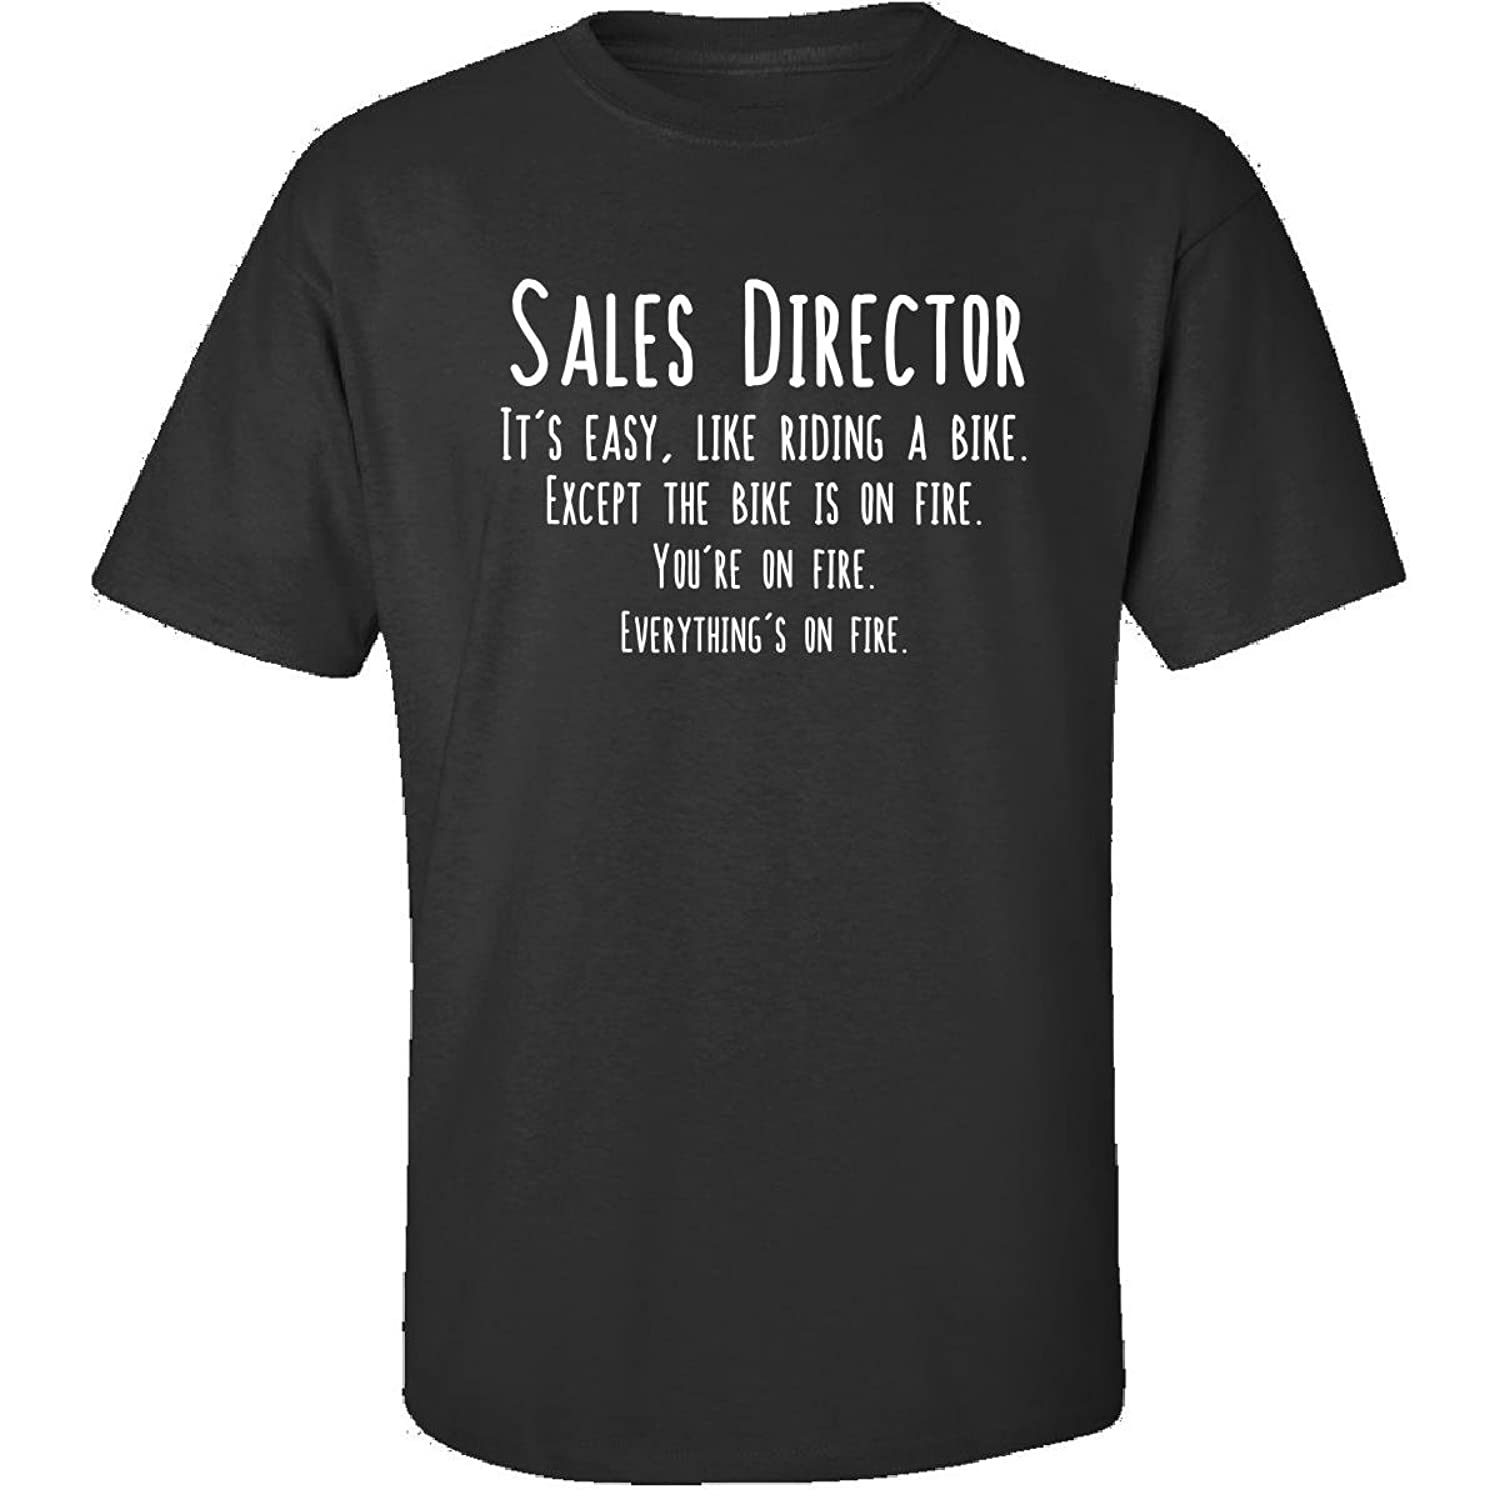 Sales Director Is Easy Like Riding Bike On Fire Funny Job - Adult Shirt